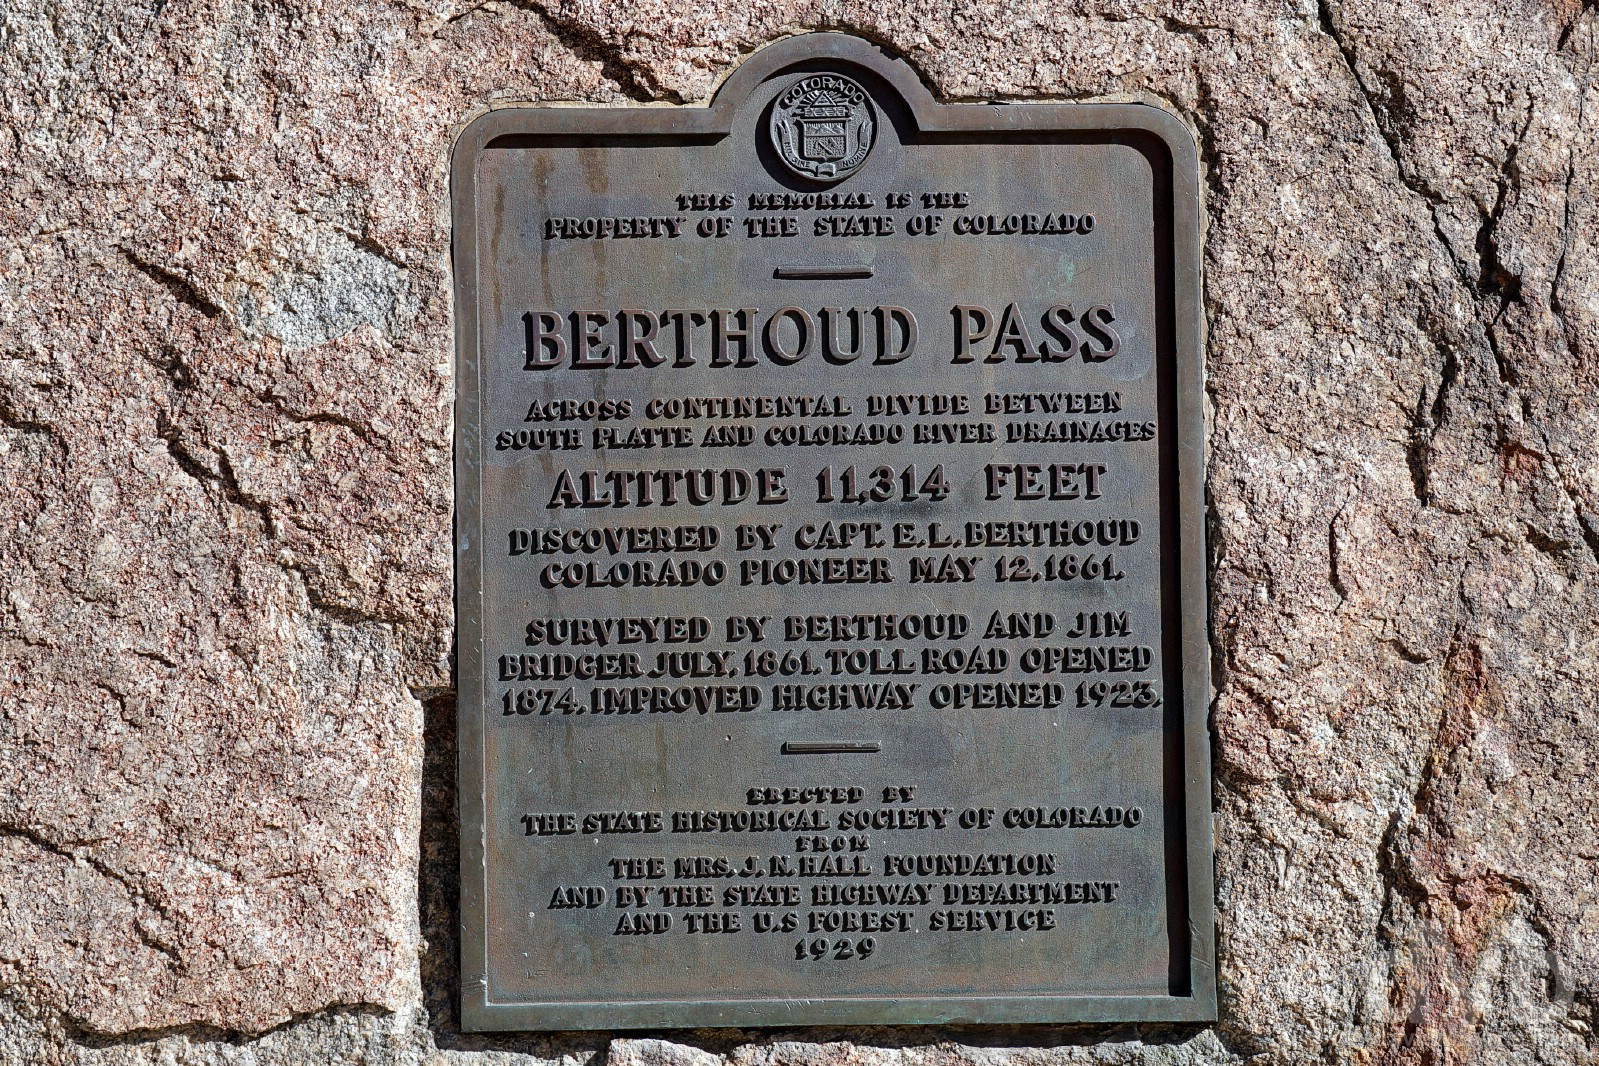 Berthoud Pass, north-central Colorado, USA. September 13, 2016.